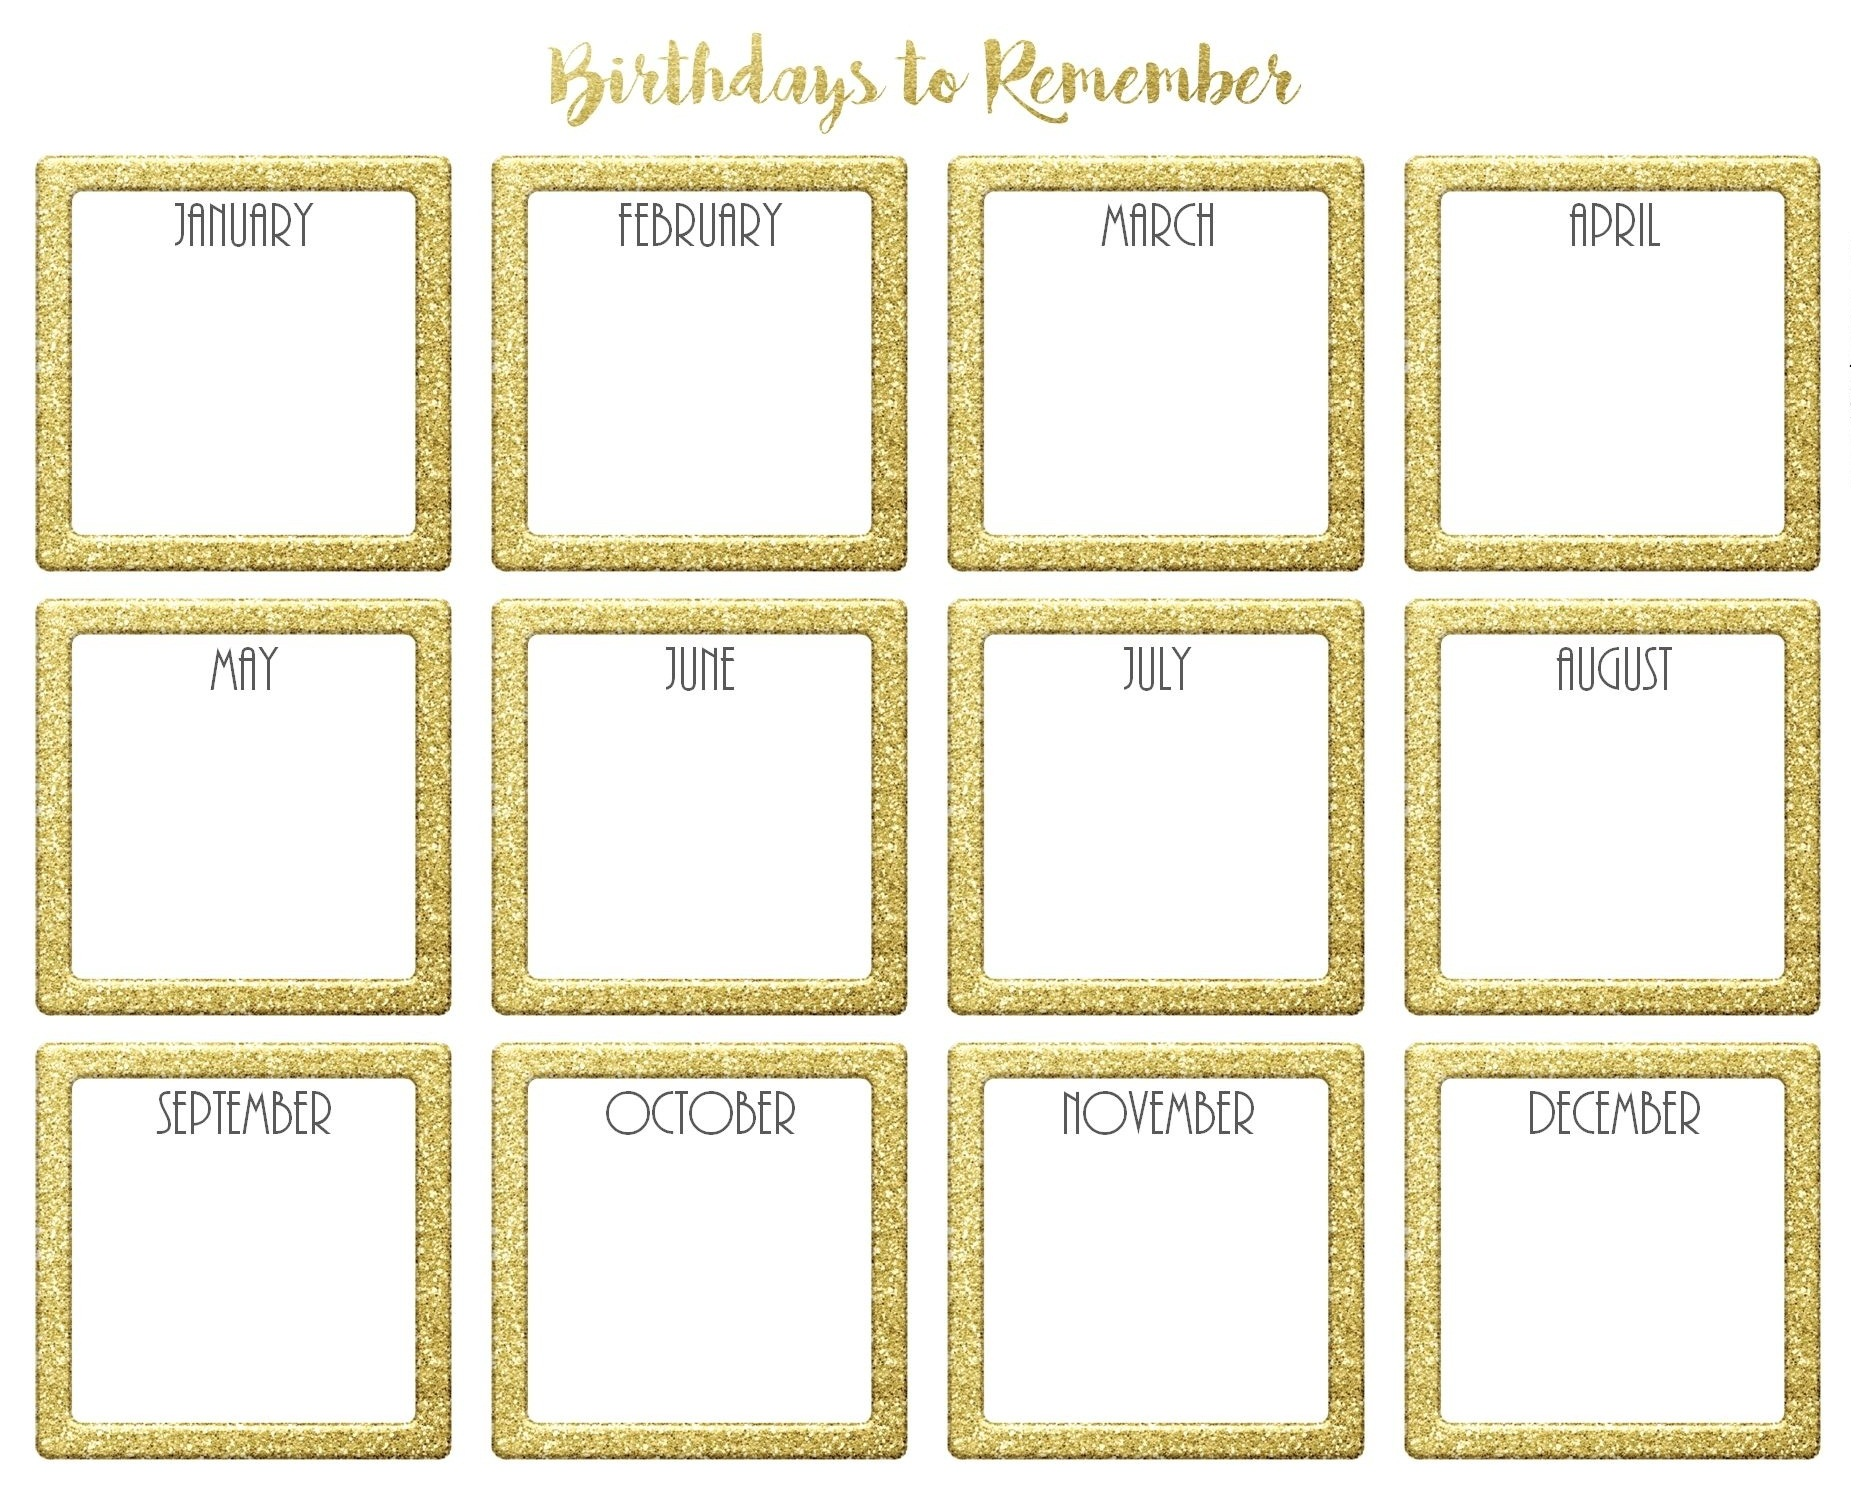 calendar template Unique free birthday calendar